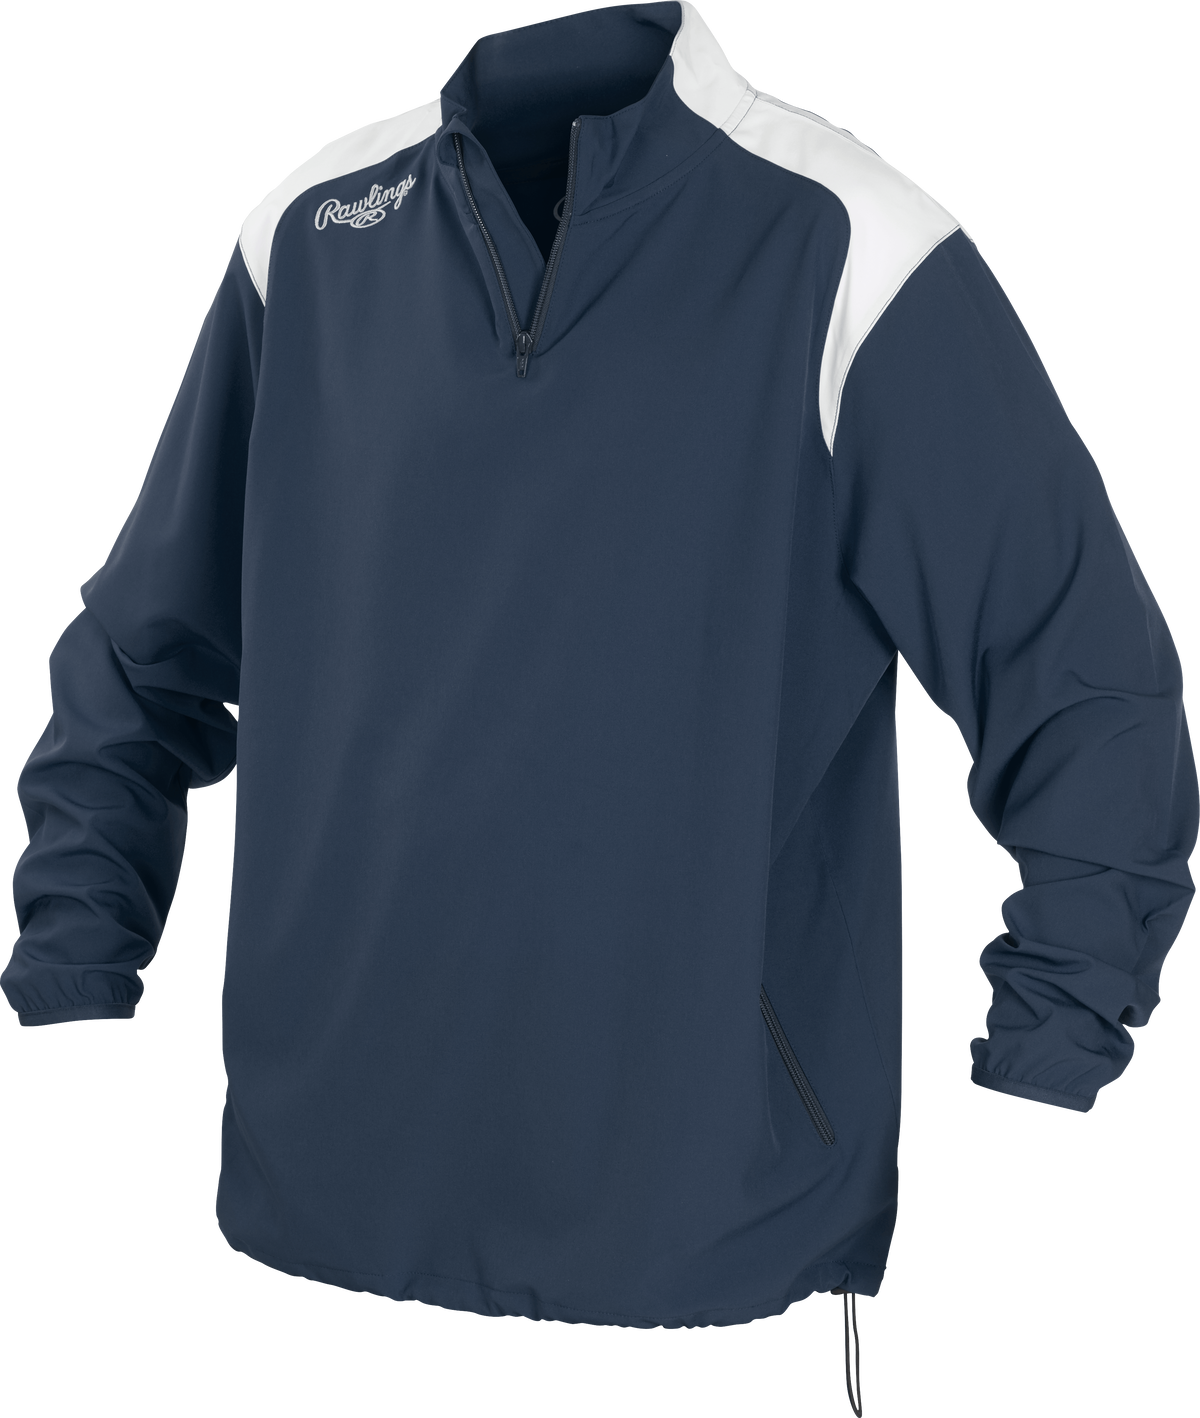 Details about  /NWT Rawlings Athletic Active Wear Performance Quarter Zip Sweatshirt Pullover